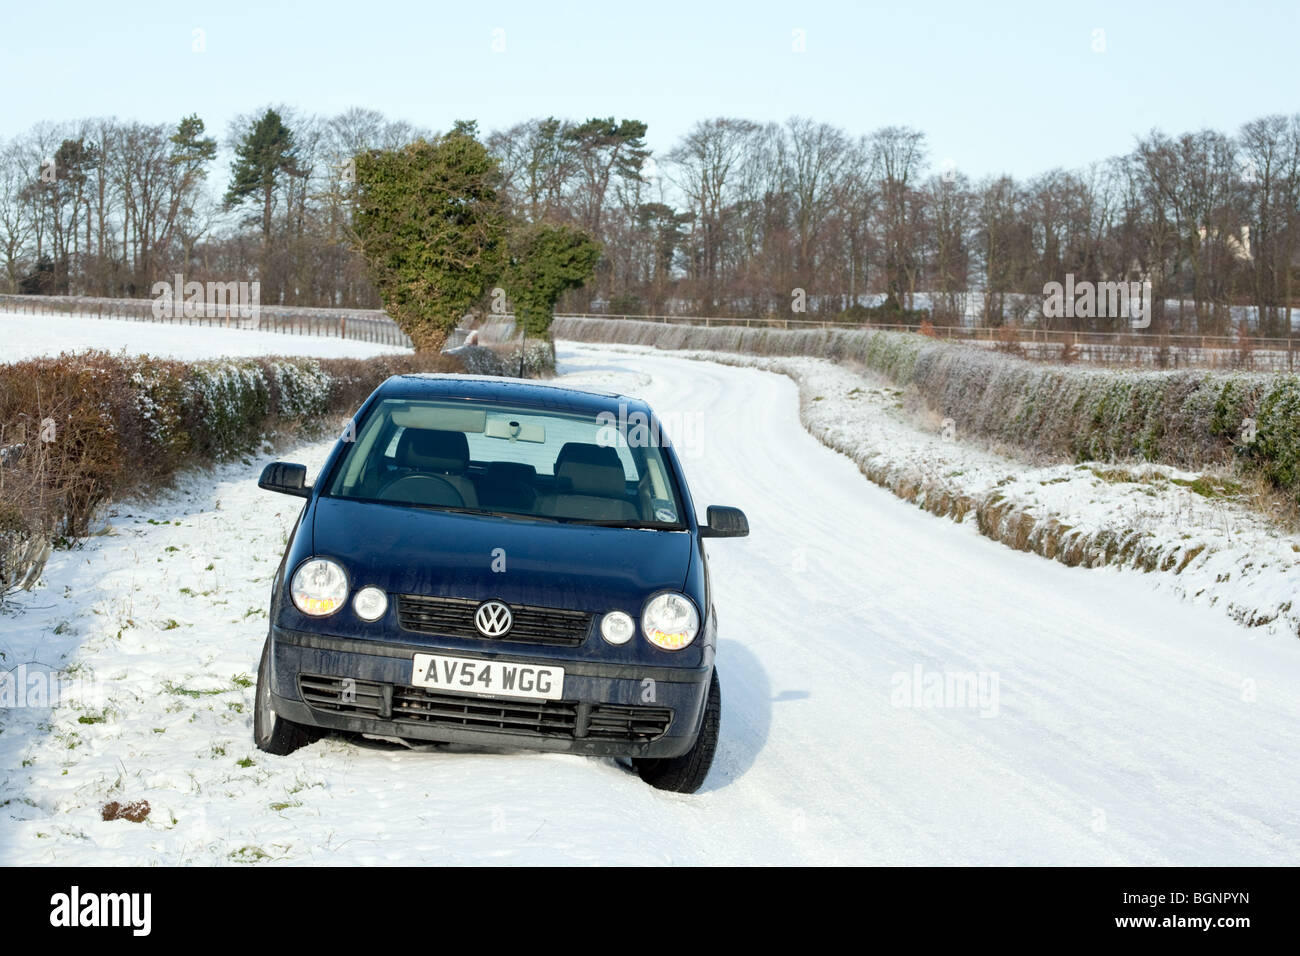 A car parked on the edge of a snow covered road, Newmarket Suffolk, UK - Stock Image